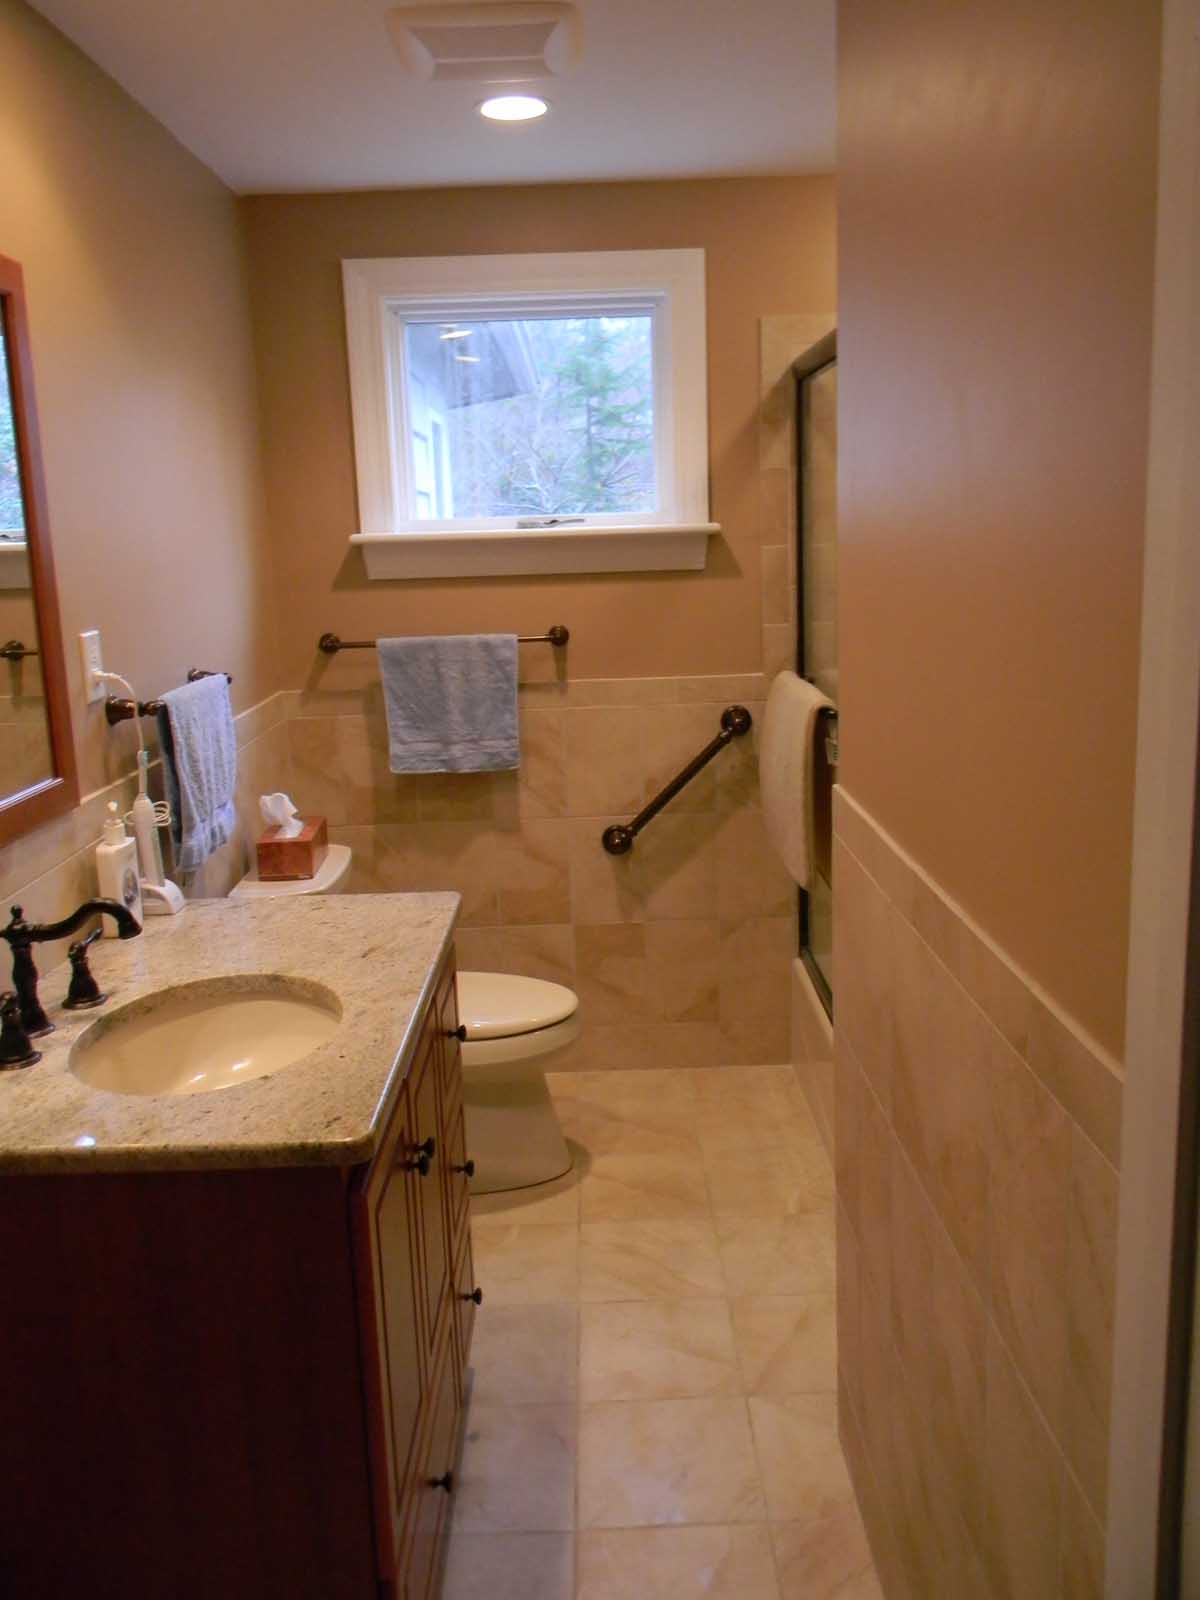 Noon Hill Rd. Medfield - After Renovation showing shower grab bar